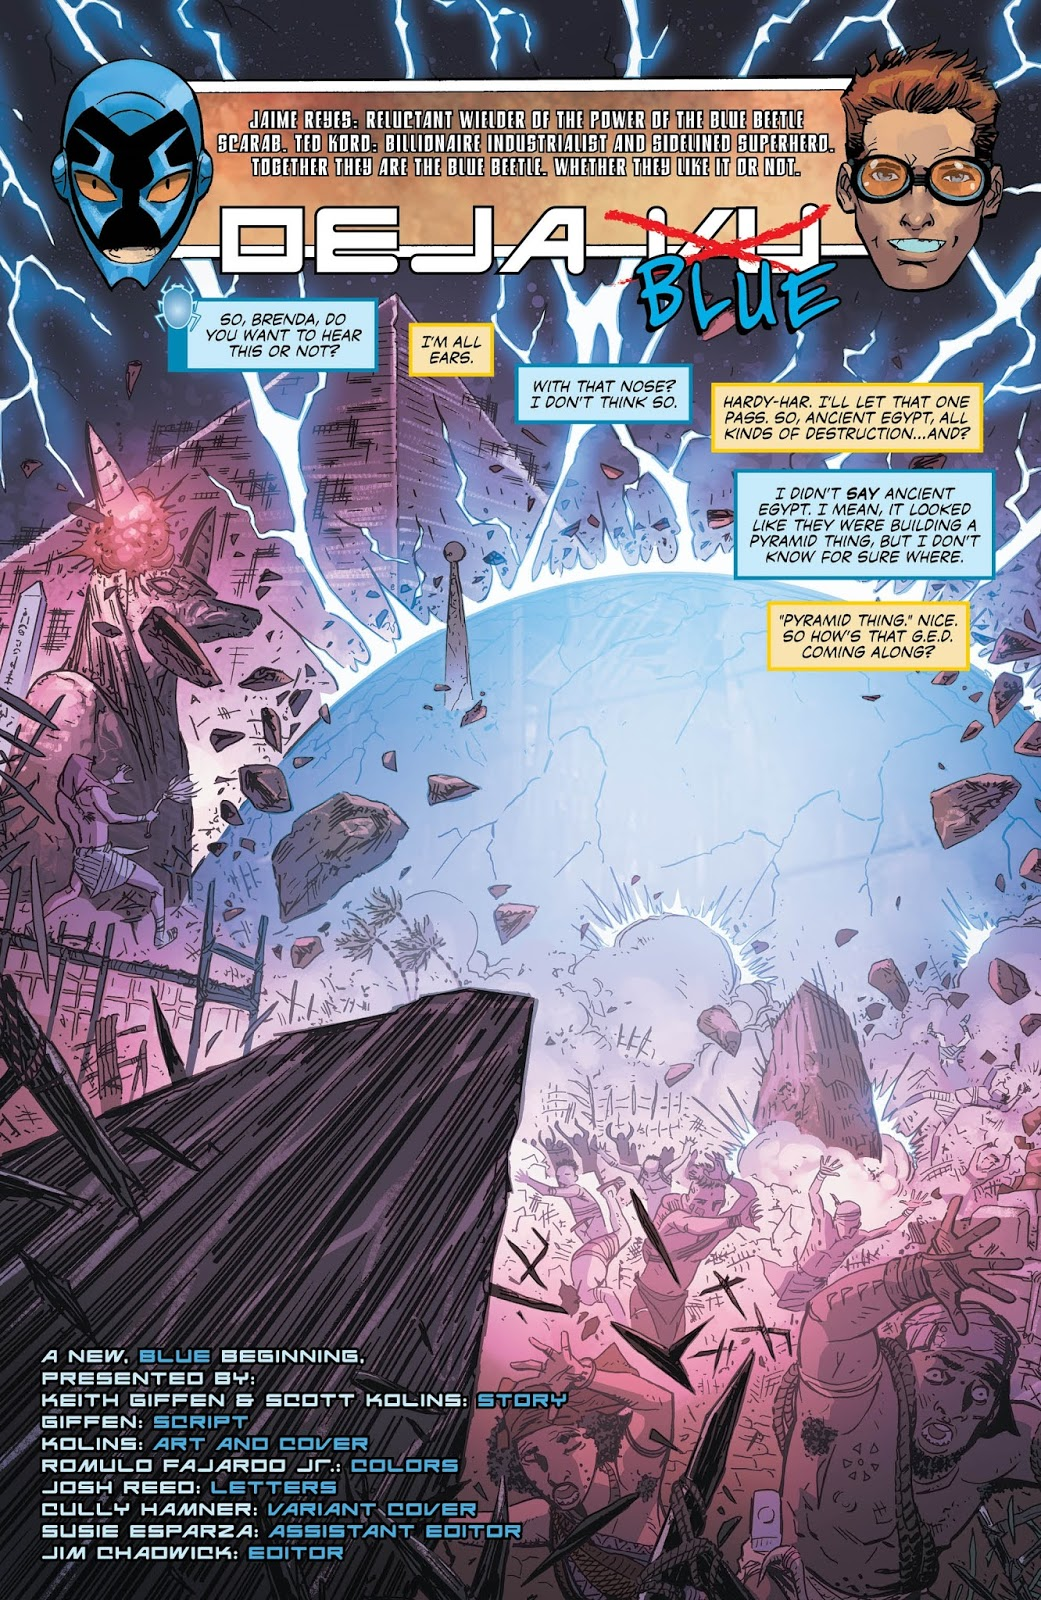 cover letter books%0A     the original wielder of Doctor Fate u    s power  seemingly on verge of  insanity  has he come to save Jaime as he claims   or will he try to  eliminate the